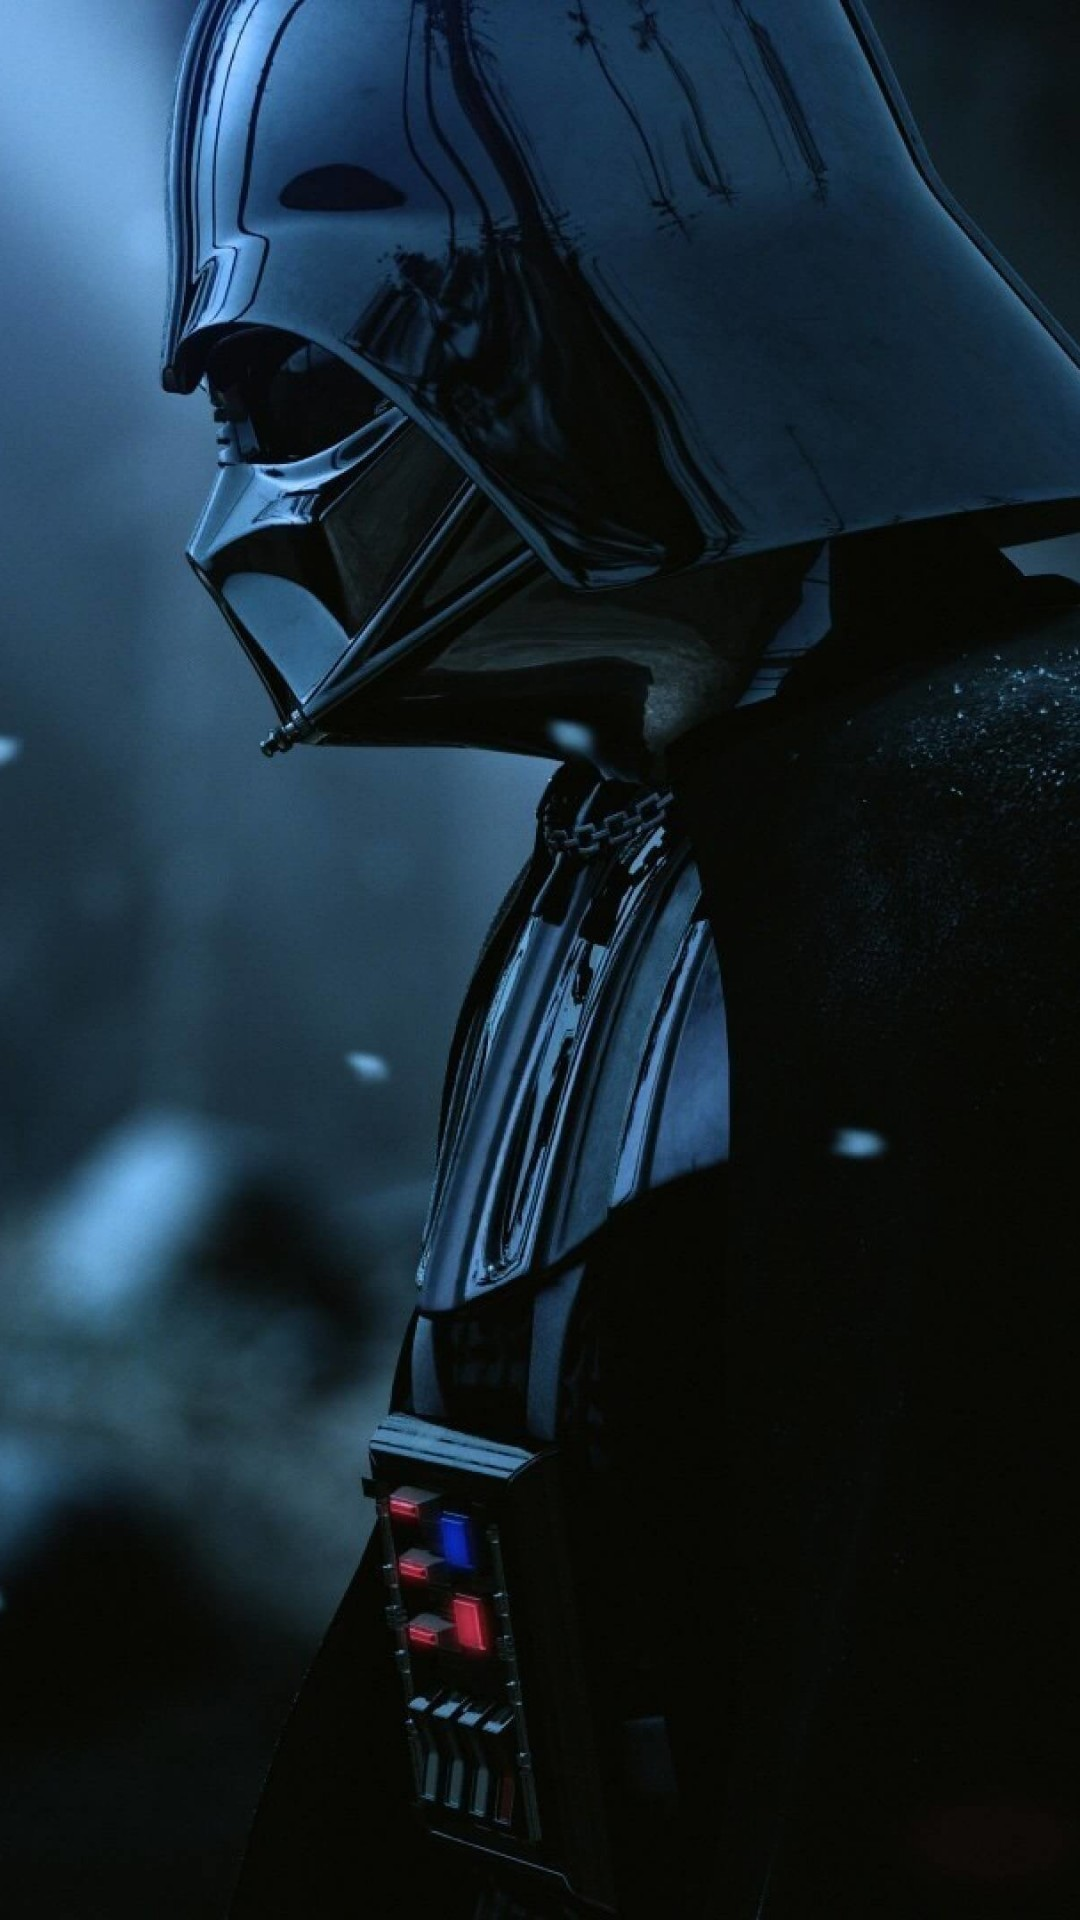 Darth Vader - The Force Unleashed 2 Wallpaper for SONY Xperia Z2